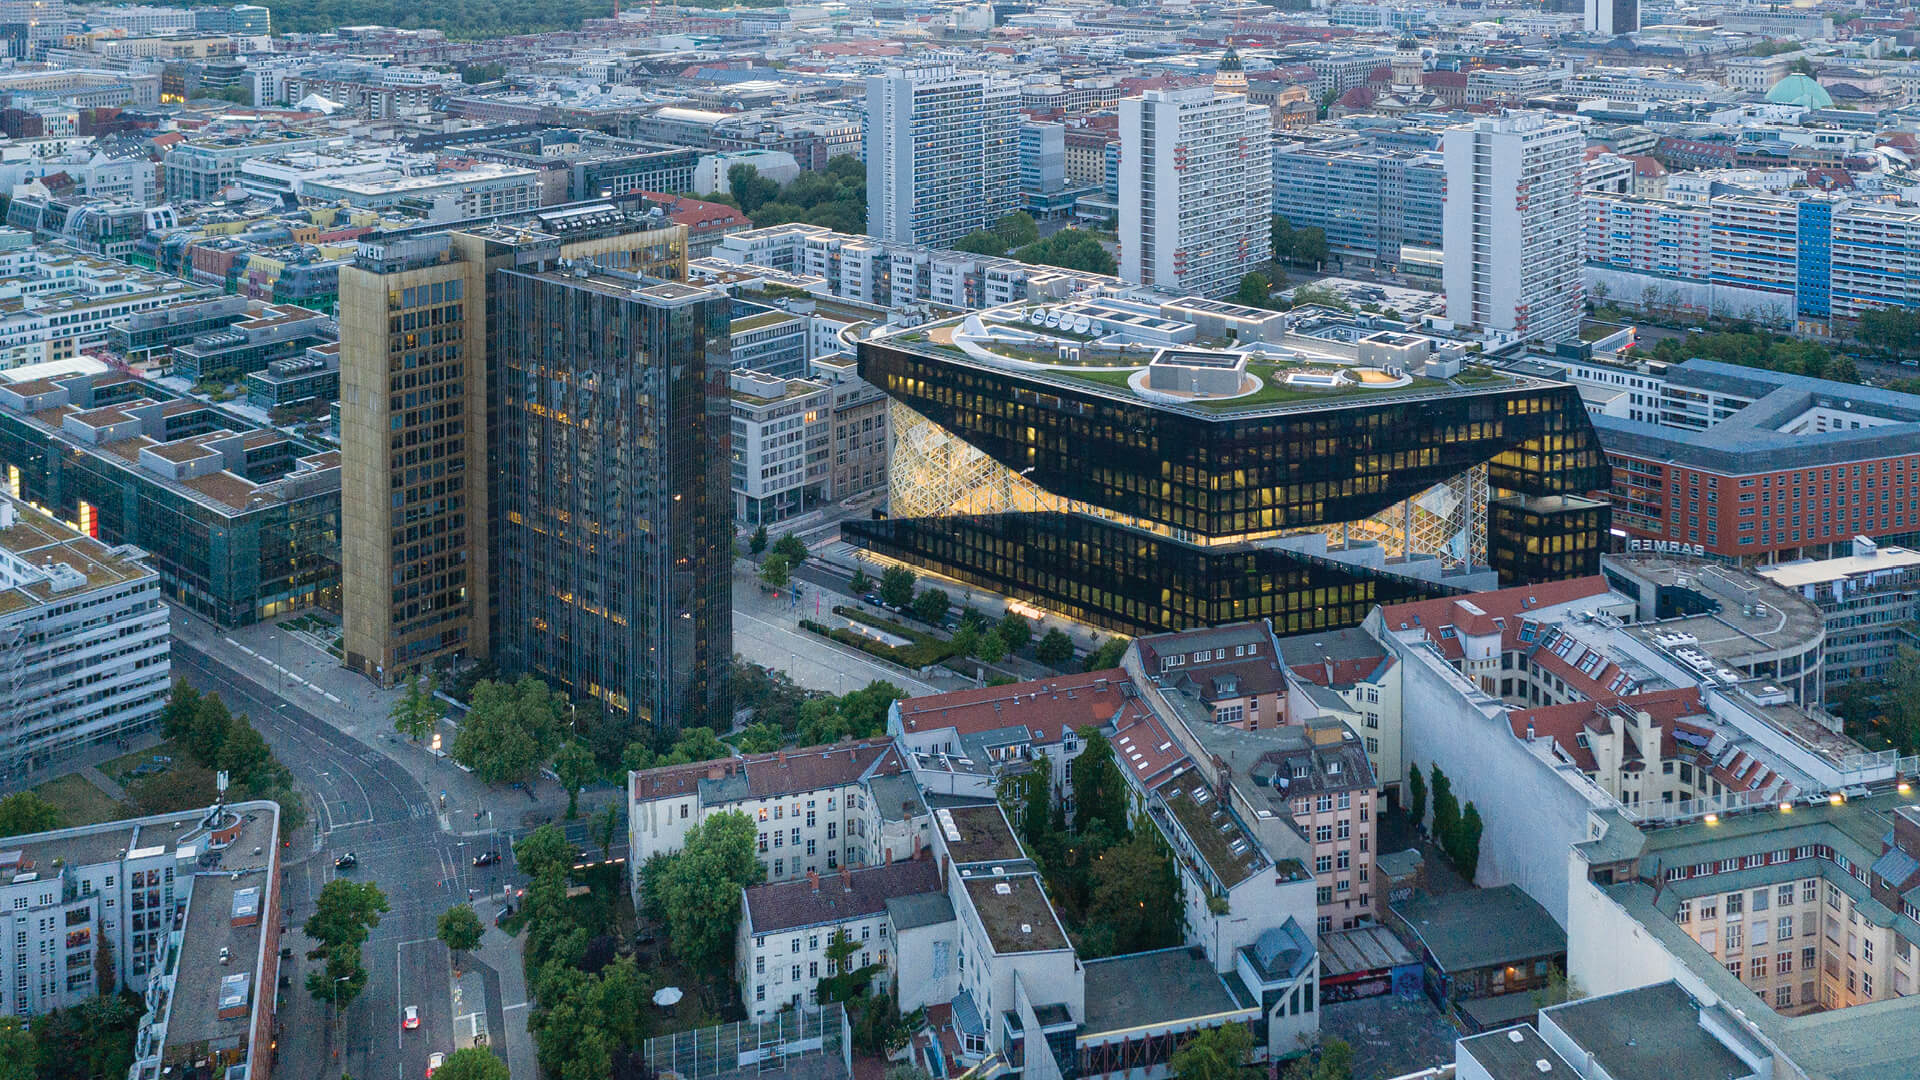 The new Axel Springer building in Berlin desgned by OMA | STIRworld